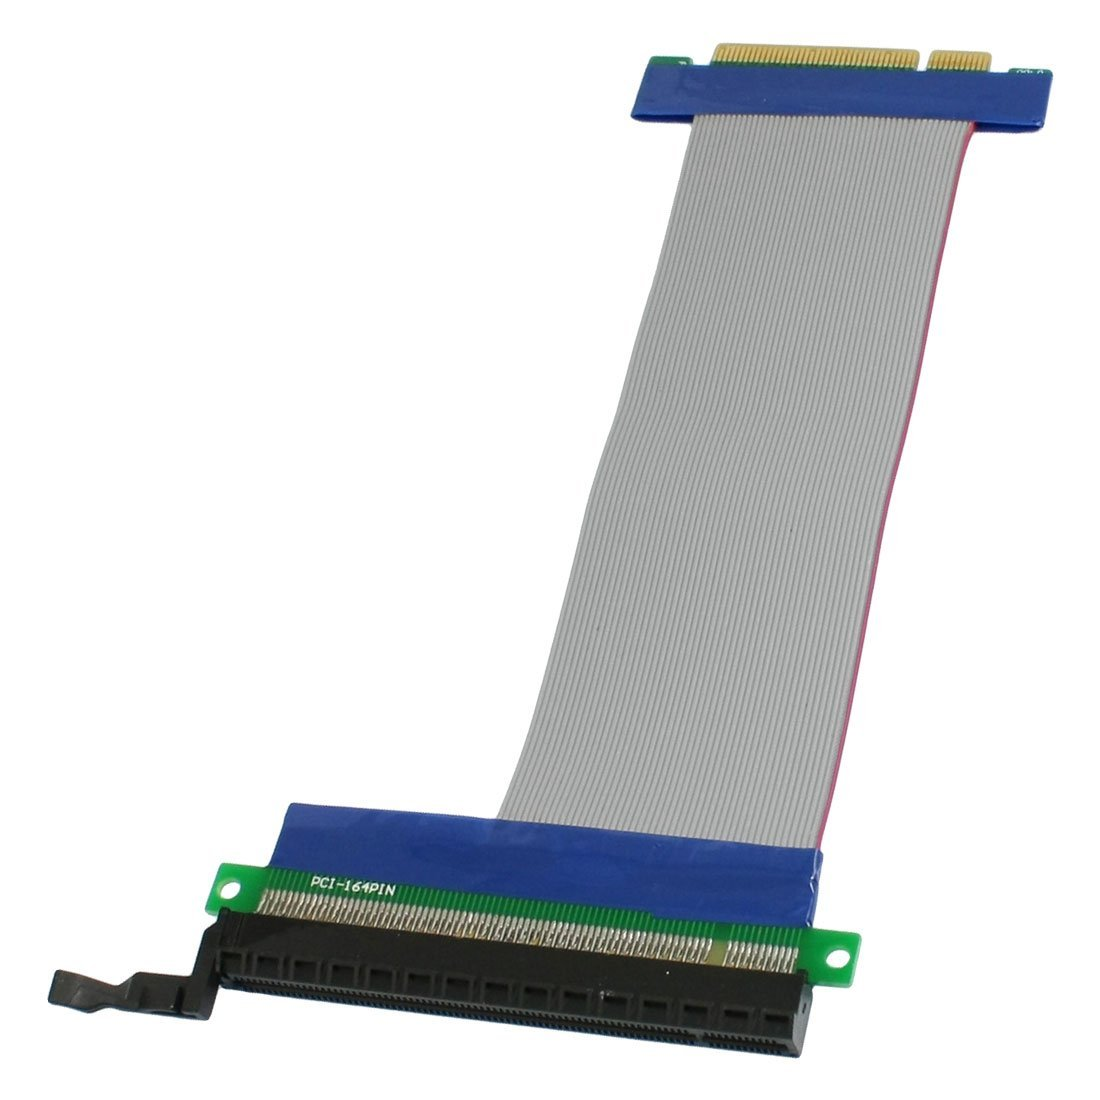 PCI Express PCI-E 8X to 16X Slot Riser Card Flex Flexible Extension Cable pci контроллеры